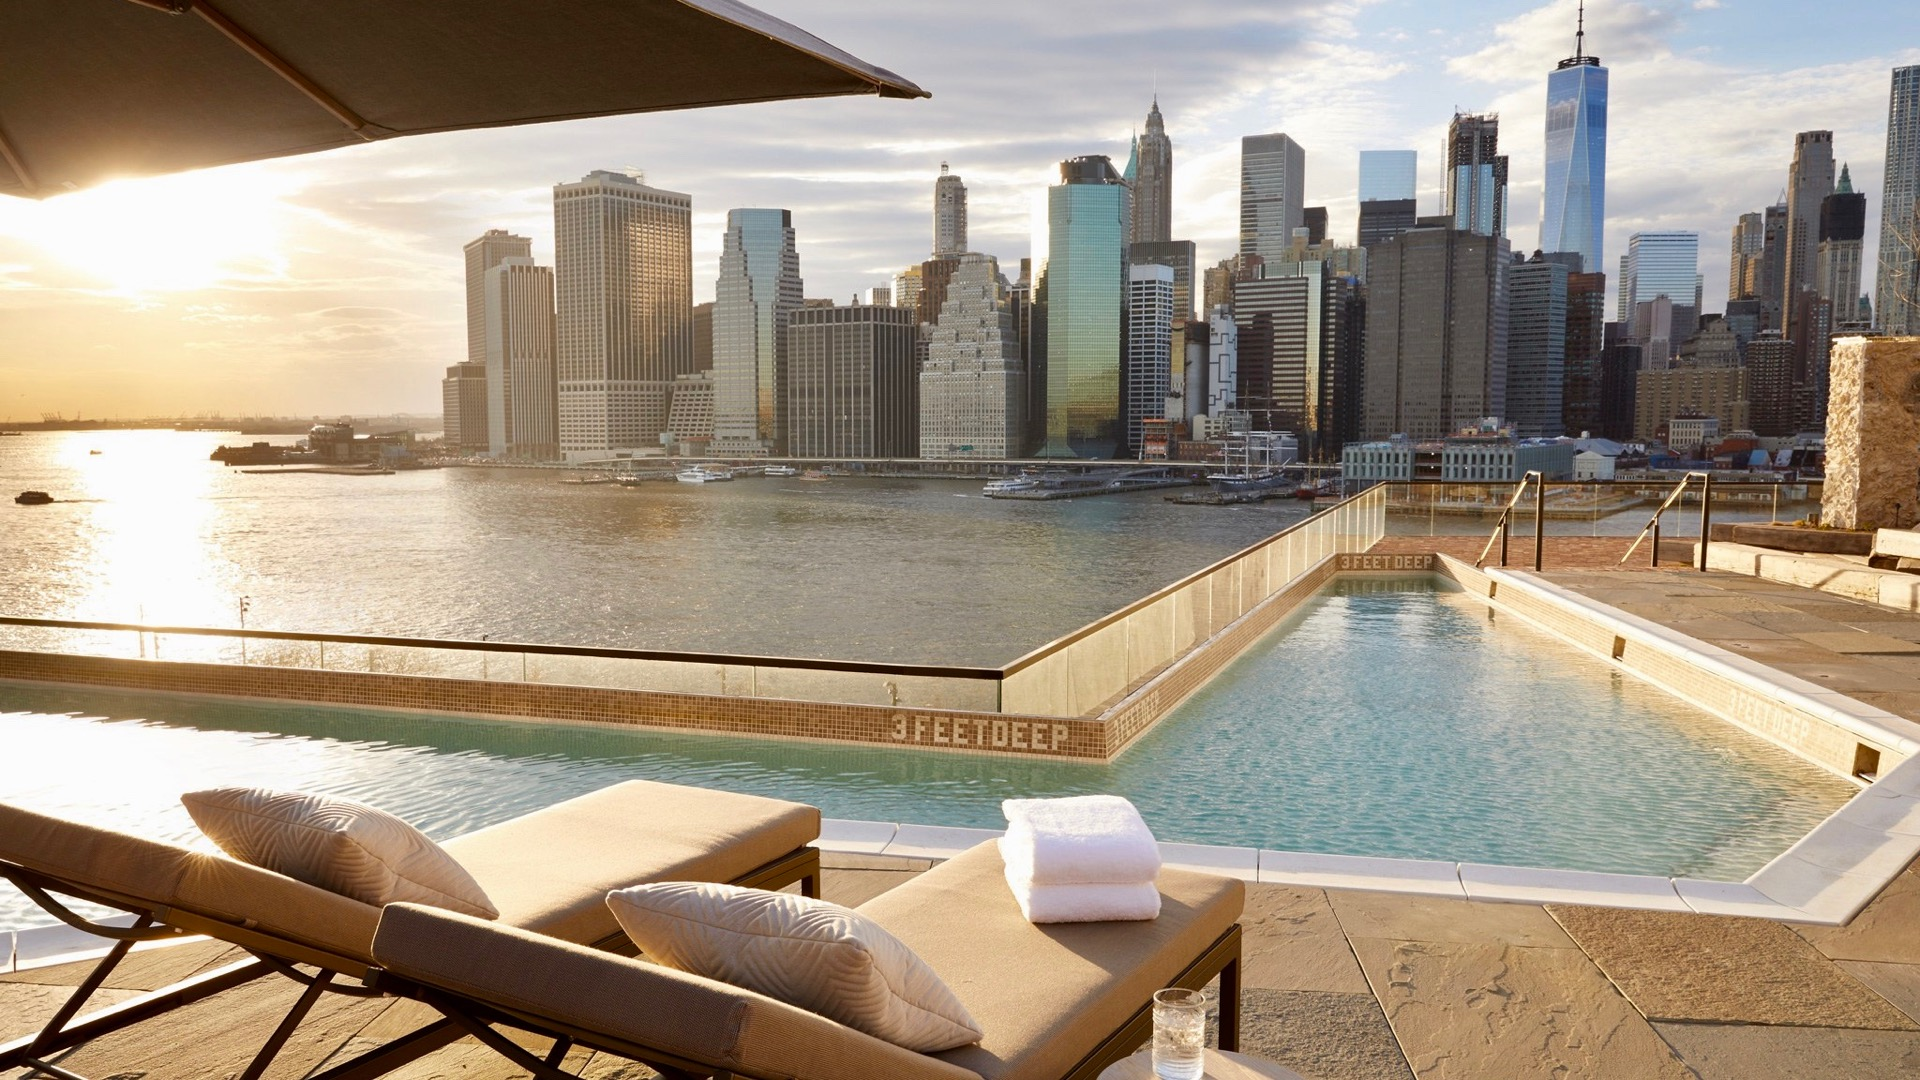 Bamford Haybarn Spa 1 Hotel Brooklyn Bridge Spas Of America